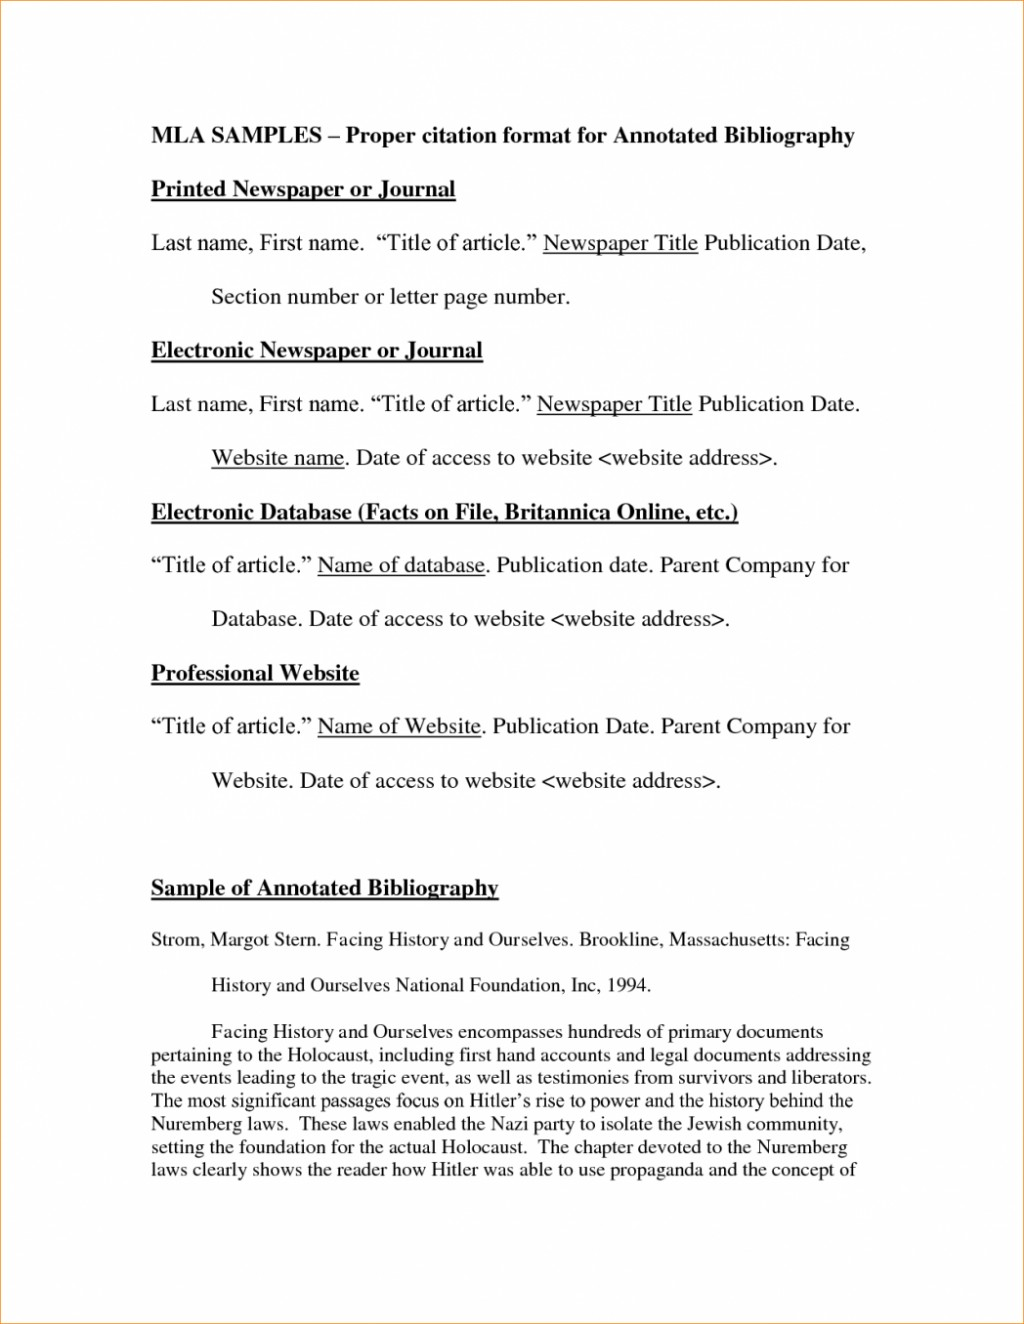 017 Essay Example Mla Format In Narrative Annotated Bibliography Template With Cover Page Title Works Cited Argumentative Persuasive Pdf 1048x1356 Beautiful Sample 2017 Paper Large